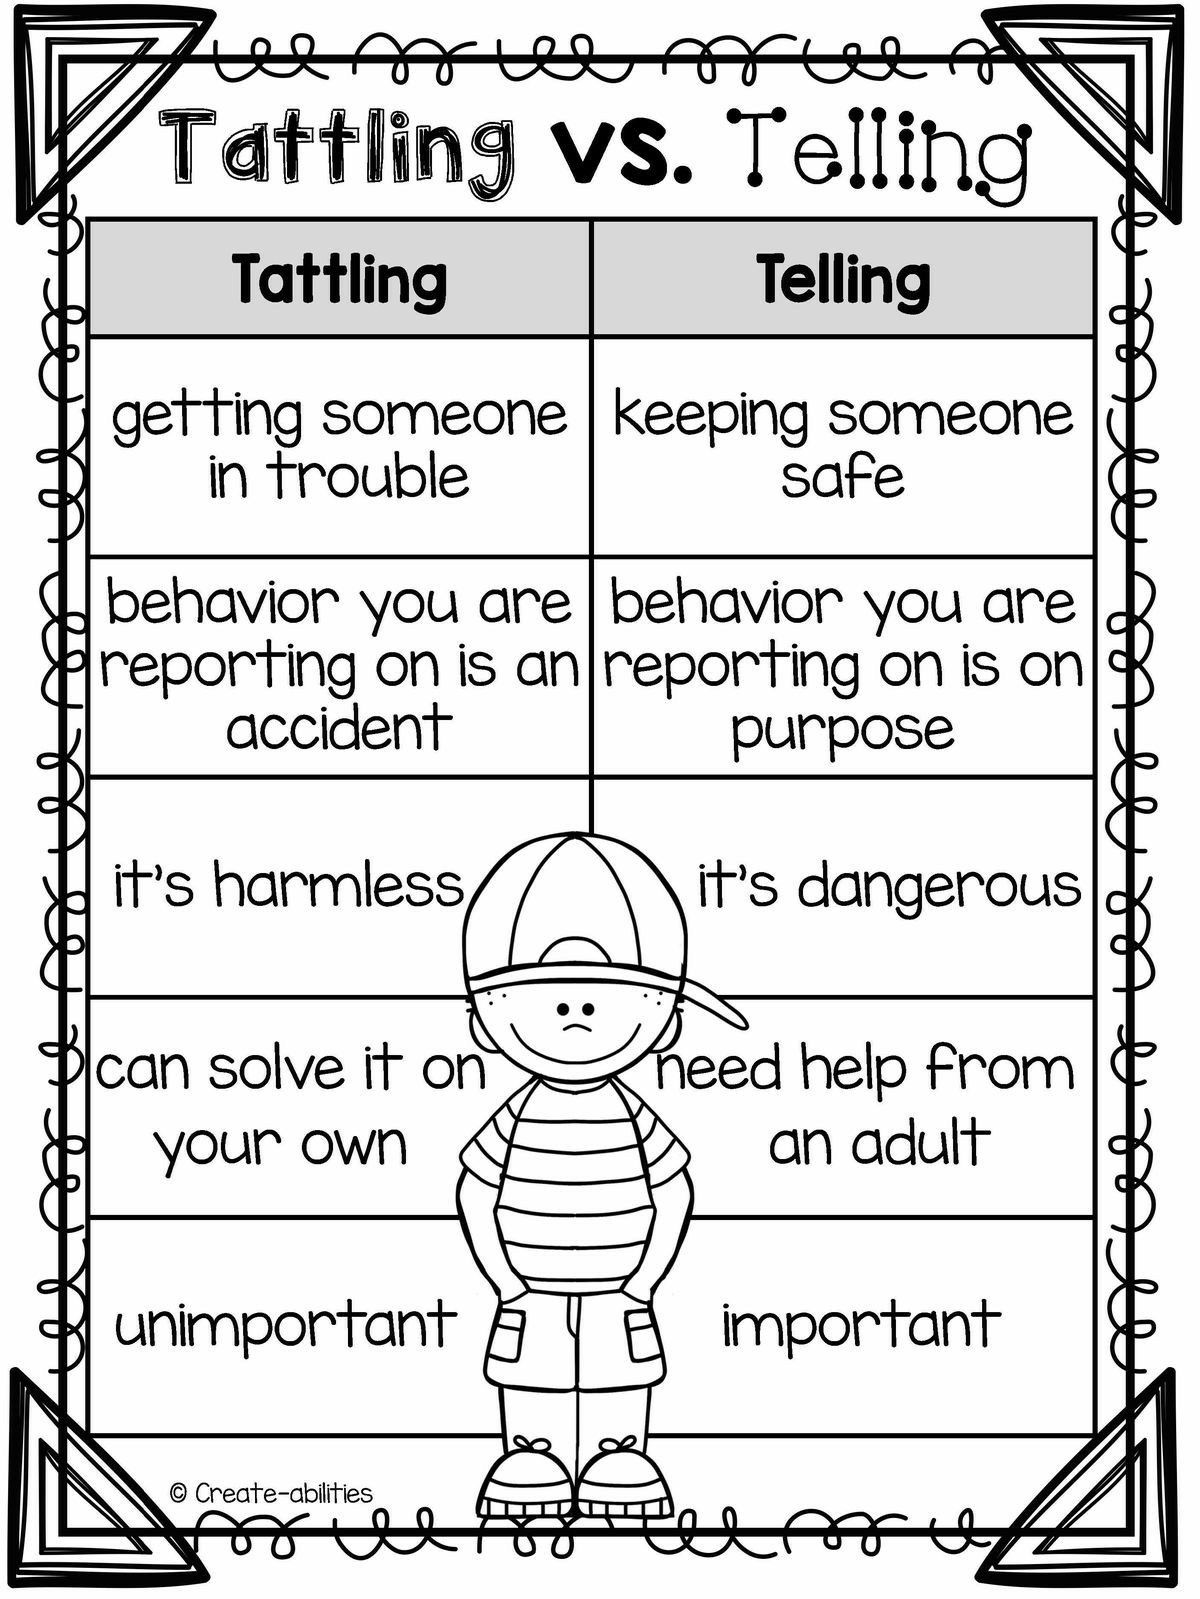 Pin By Samantha Sharp On Parenting With Images